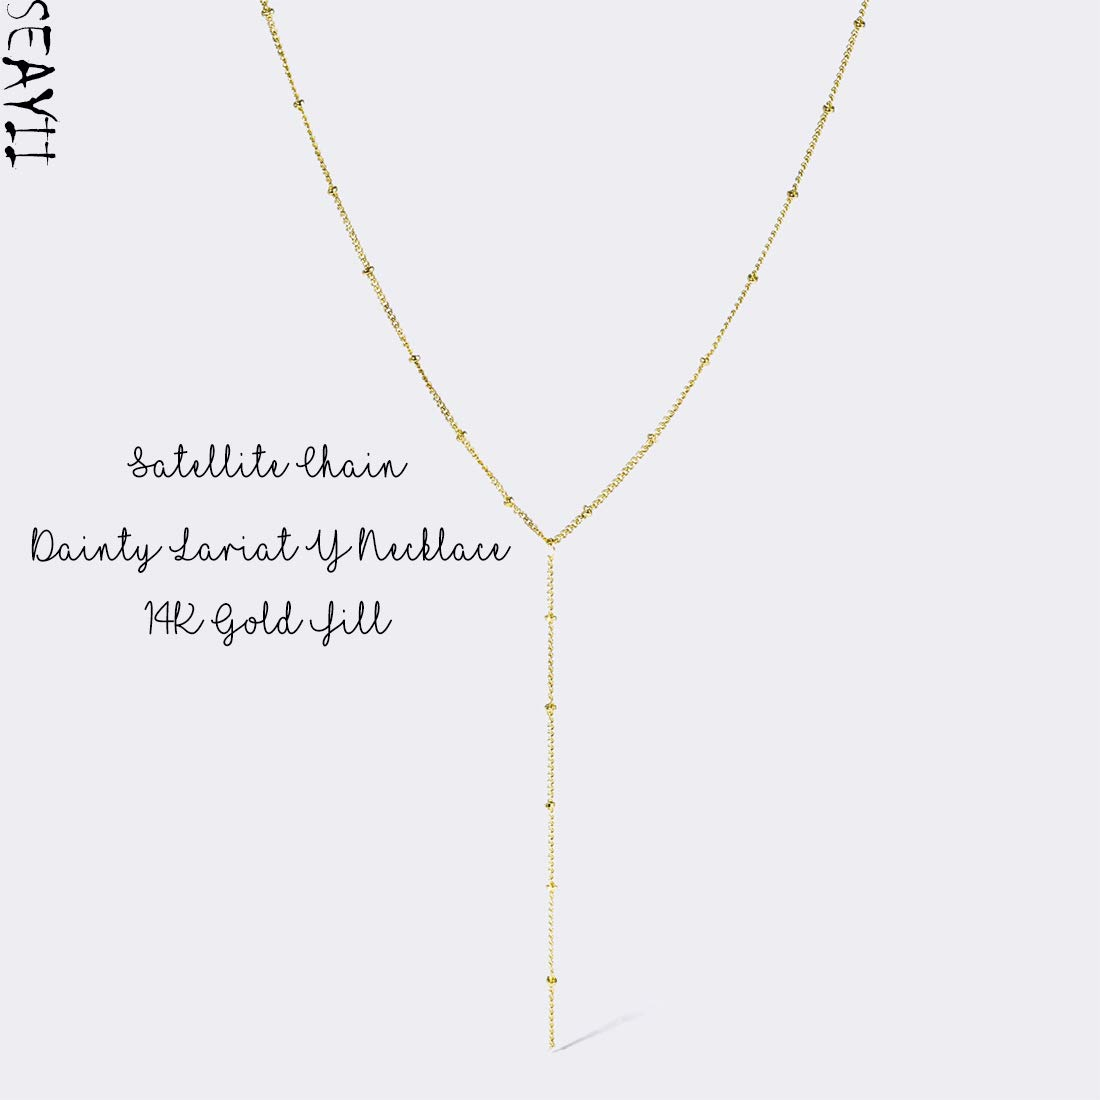 SEAYII Women Y Necklace Gold Pearl Dangle Bar Drop Lariat Dainty Gold Satellite Chain Coin Simple Layering 14K Gold Fill Delicate Handmade Gold Jewelry Gift NK014